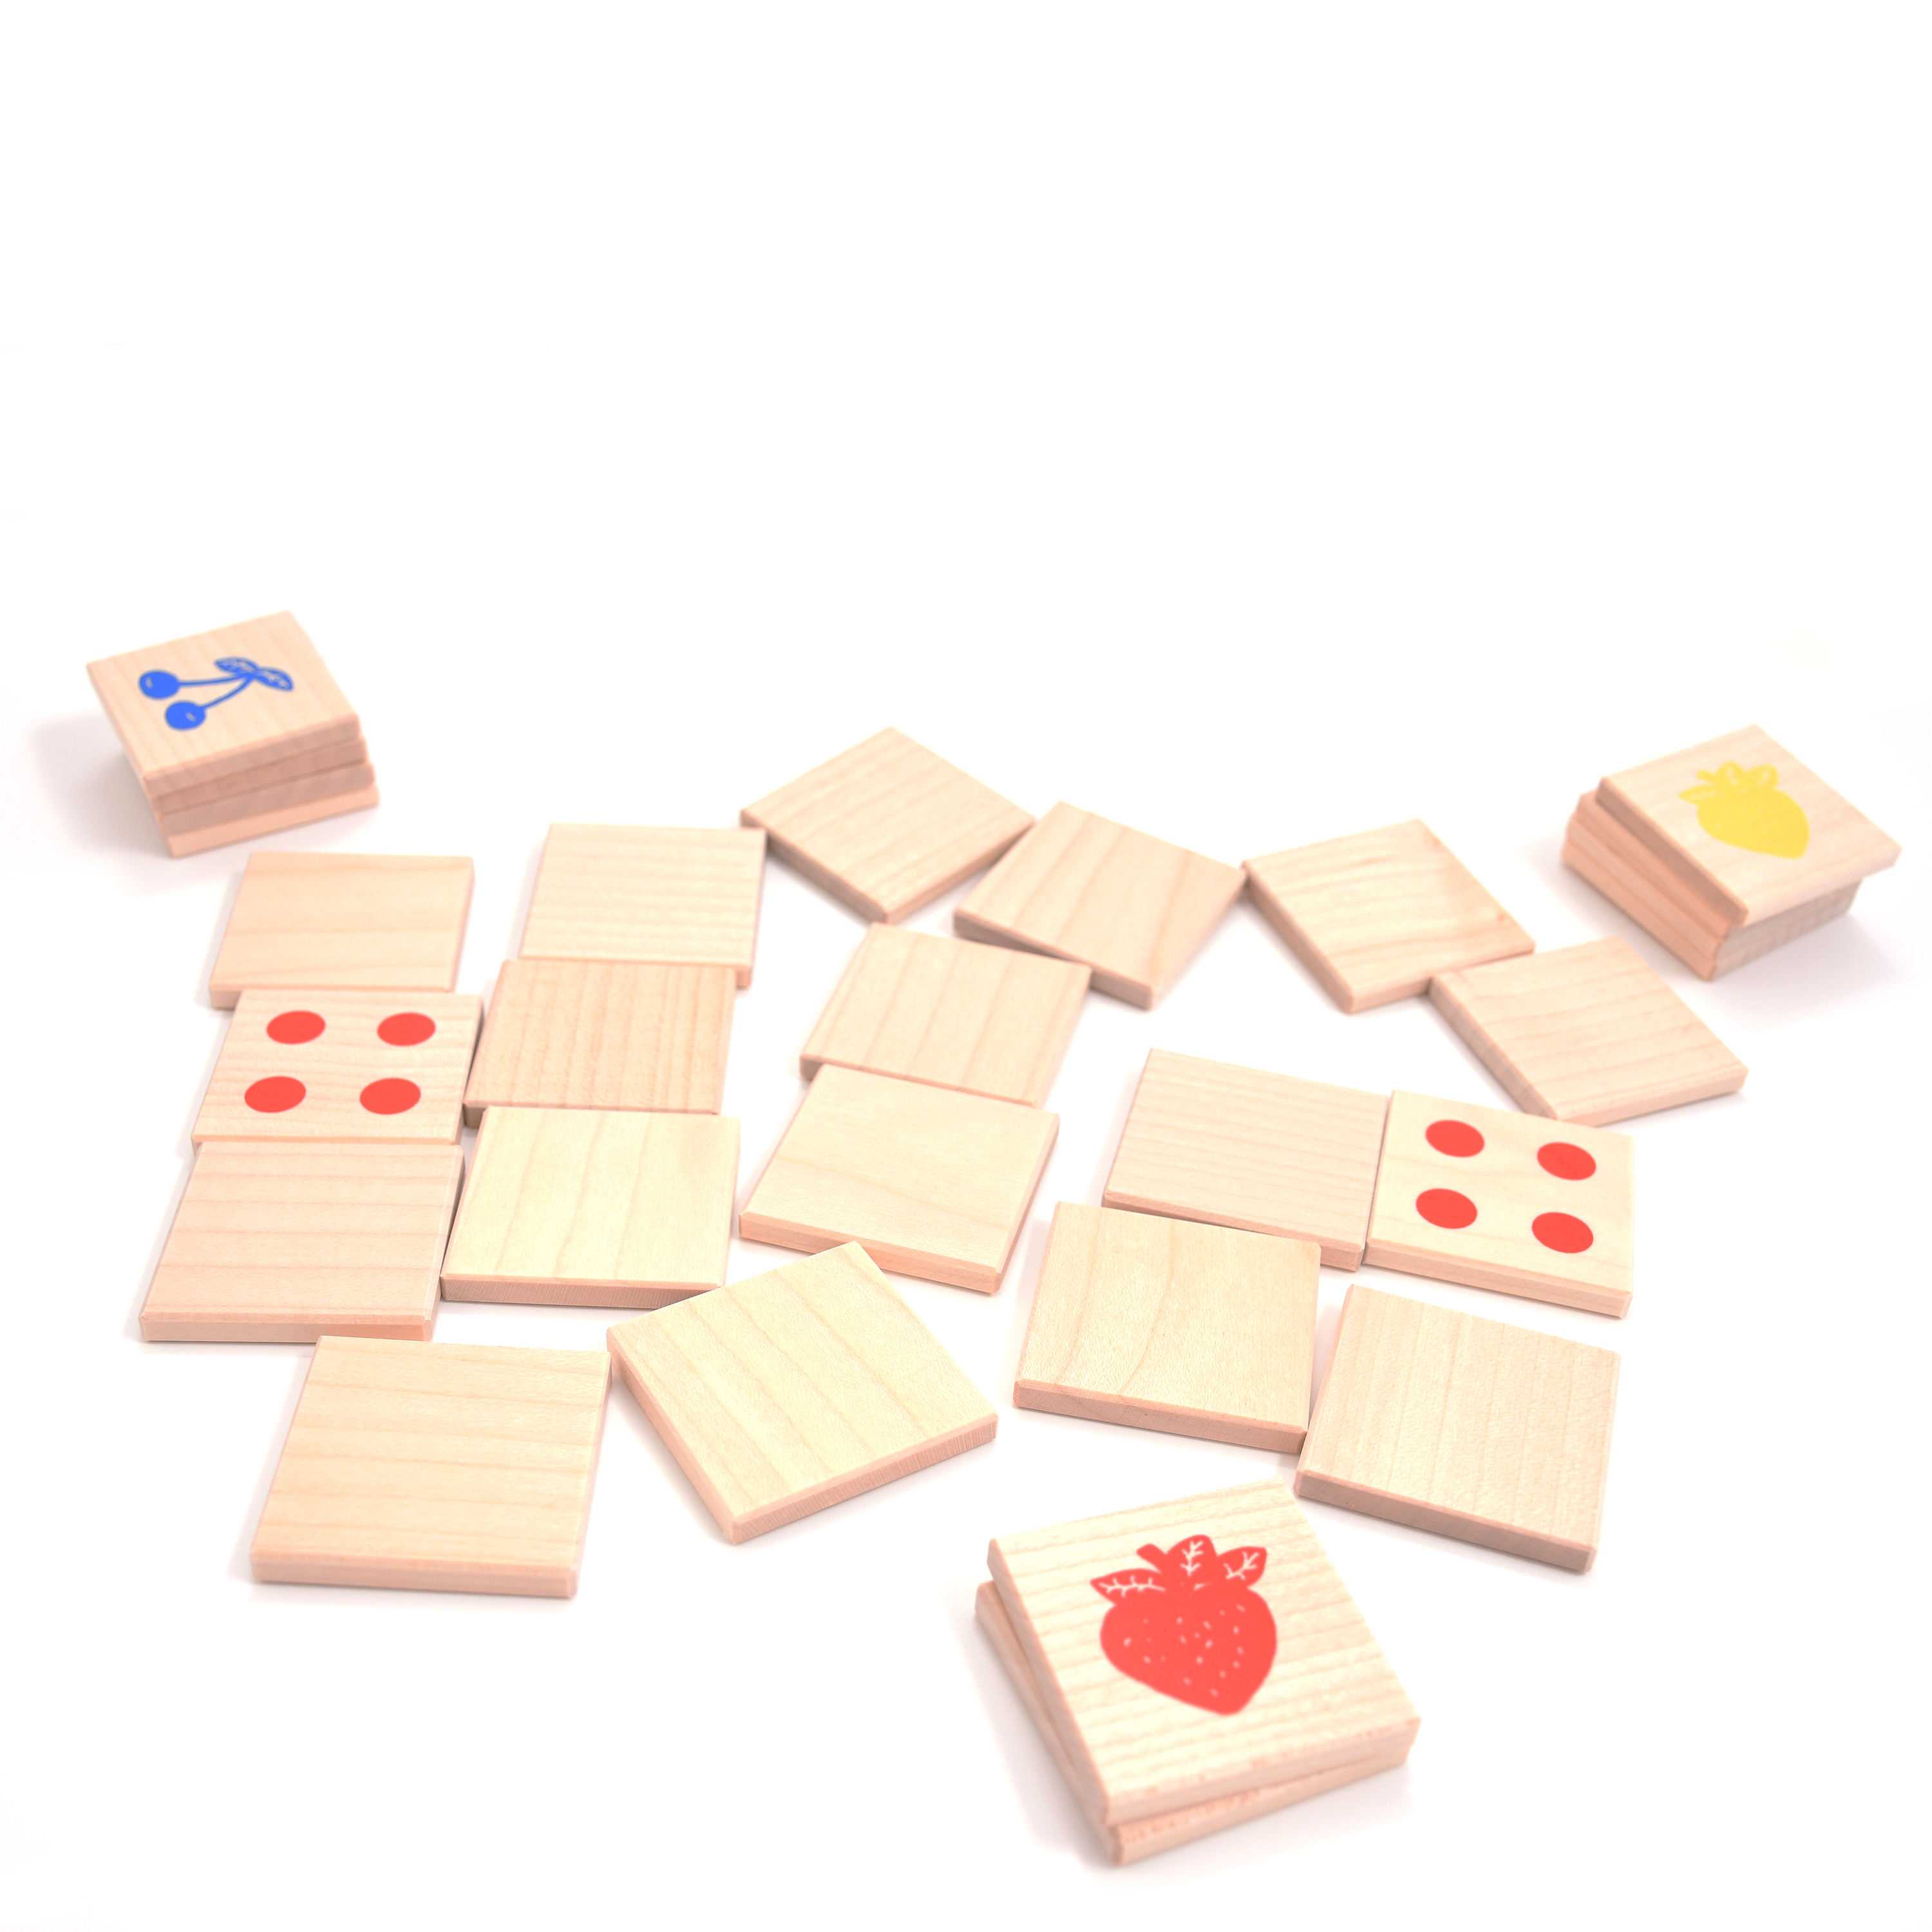 Maple tree wood memory game with yellow, red and blue pictures of fruits